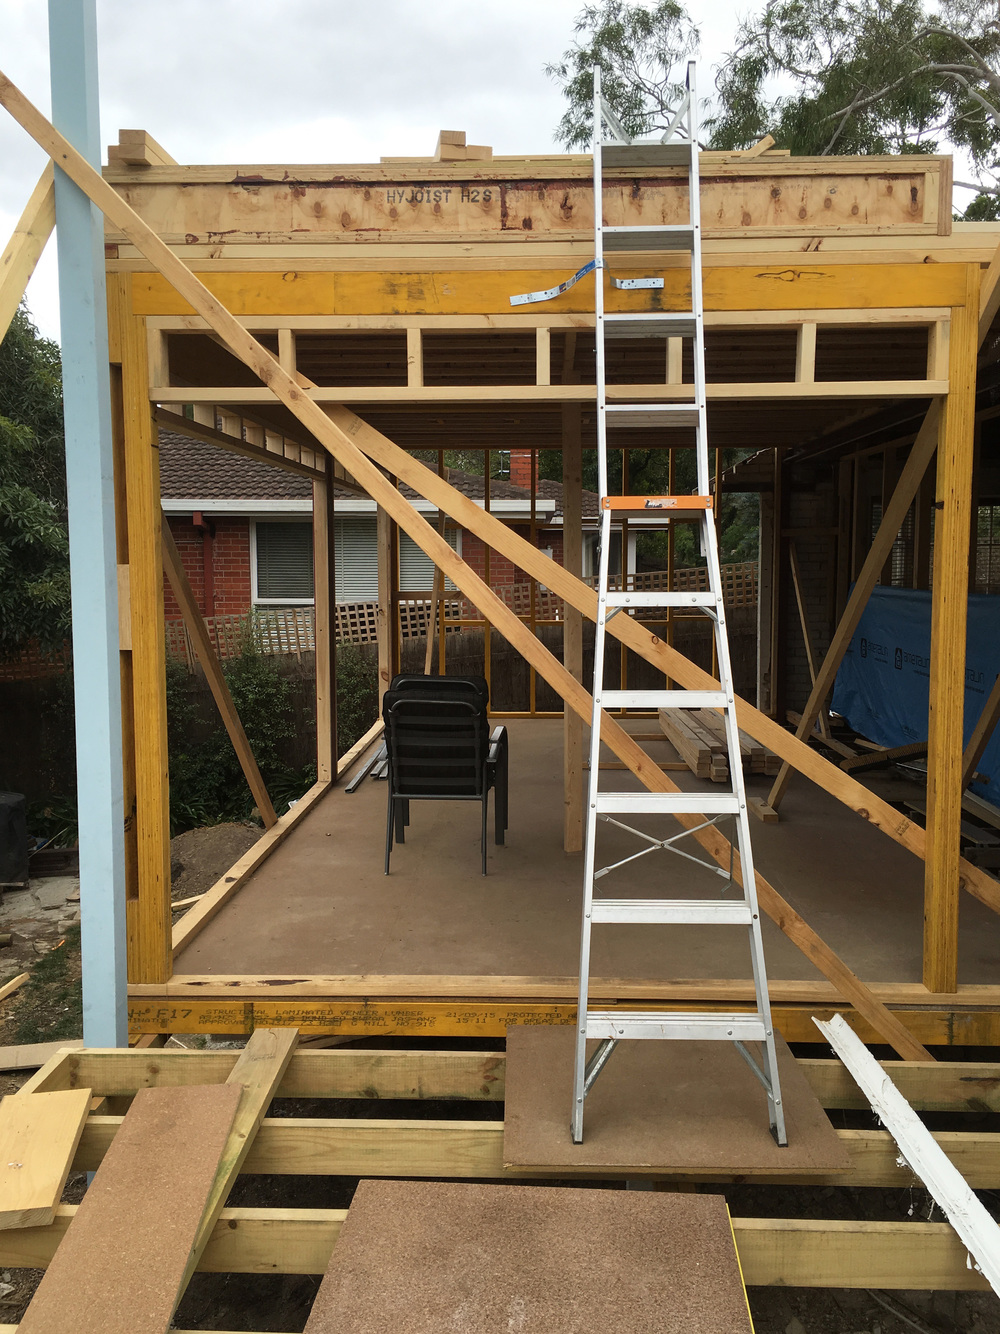 The way up to the next level - adding on a second storey in the renovation